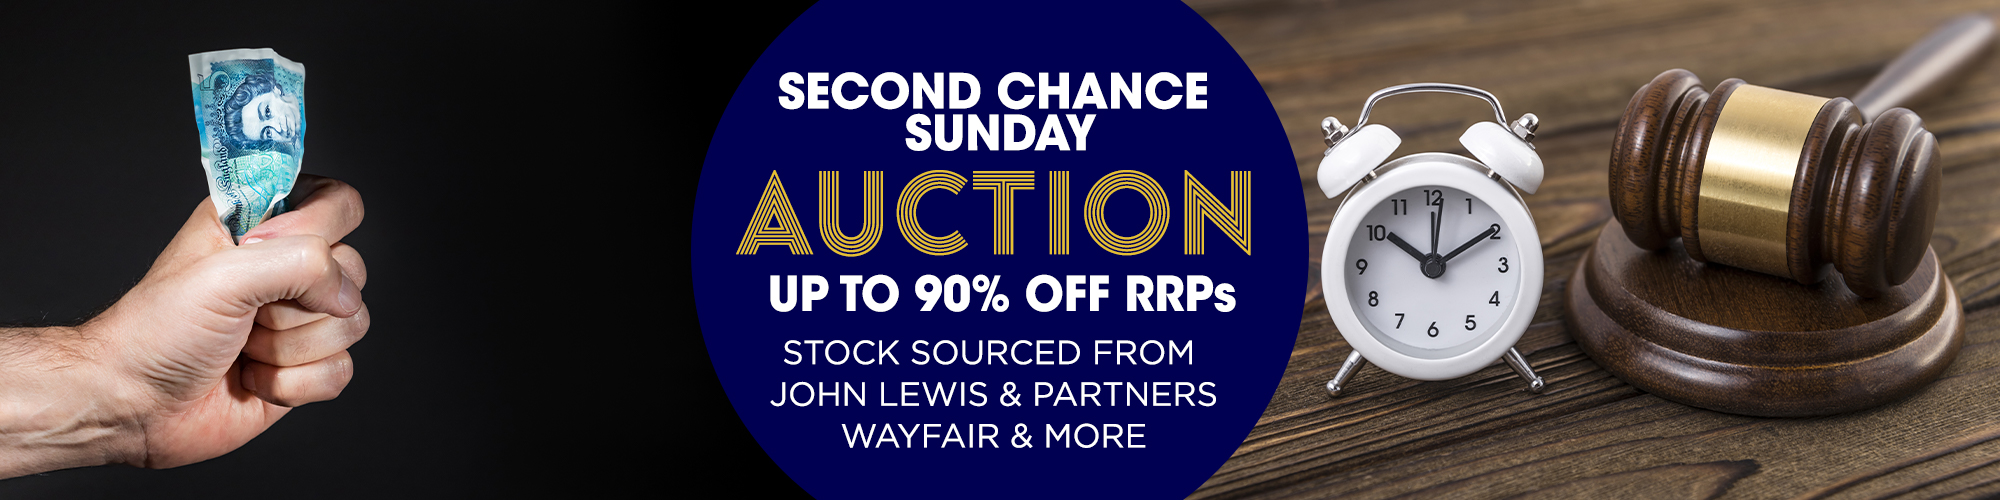 Second Chance Sunday Online Auction